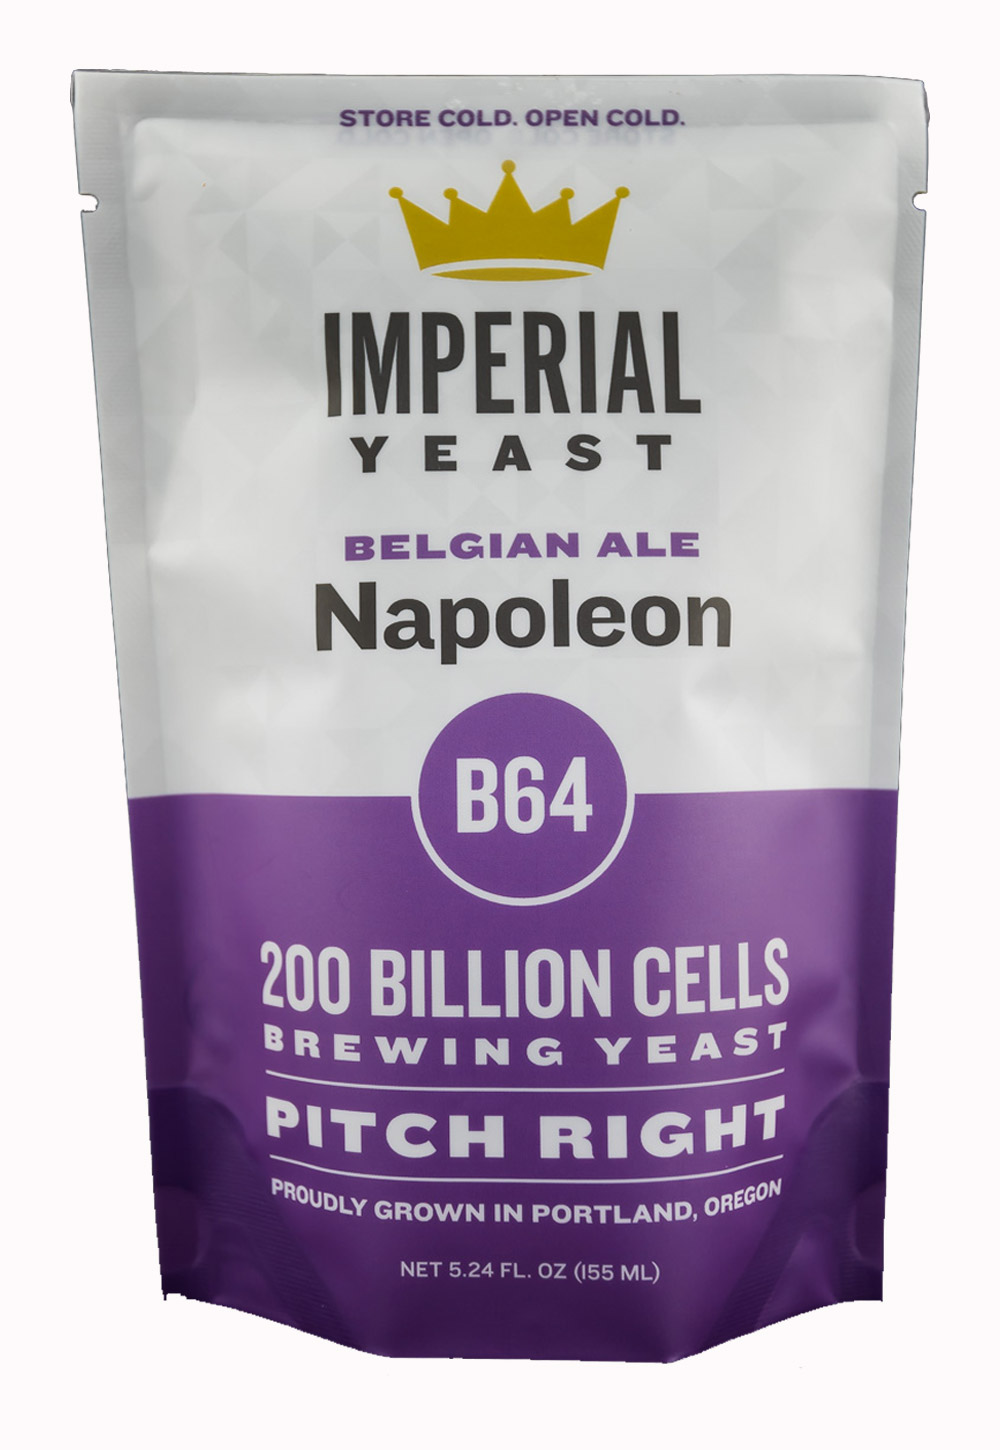 B64 Napoleon Saison Yeast from Imperial Yeast